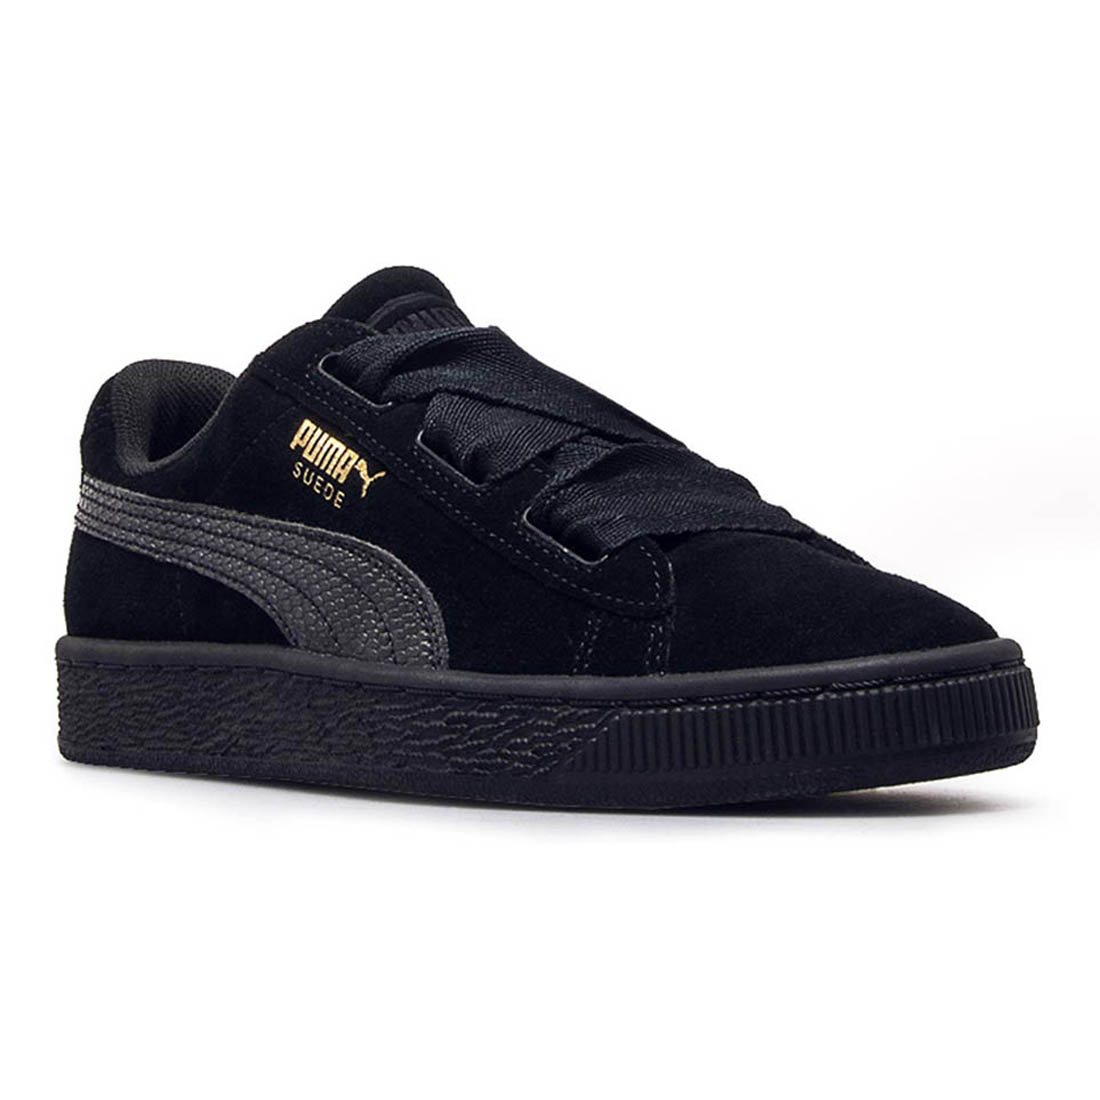 finest selection ee520 7d60e Details about PUMA Suede Heart SNK Youth | Black / Black (364918-06)